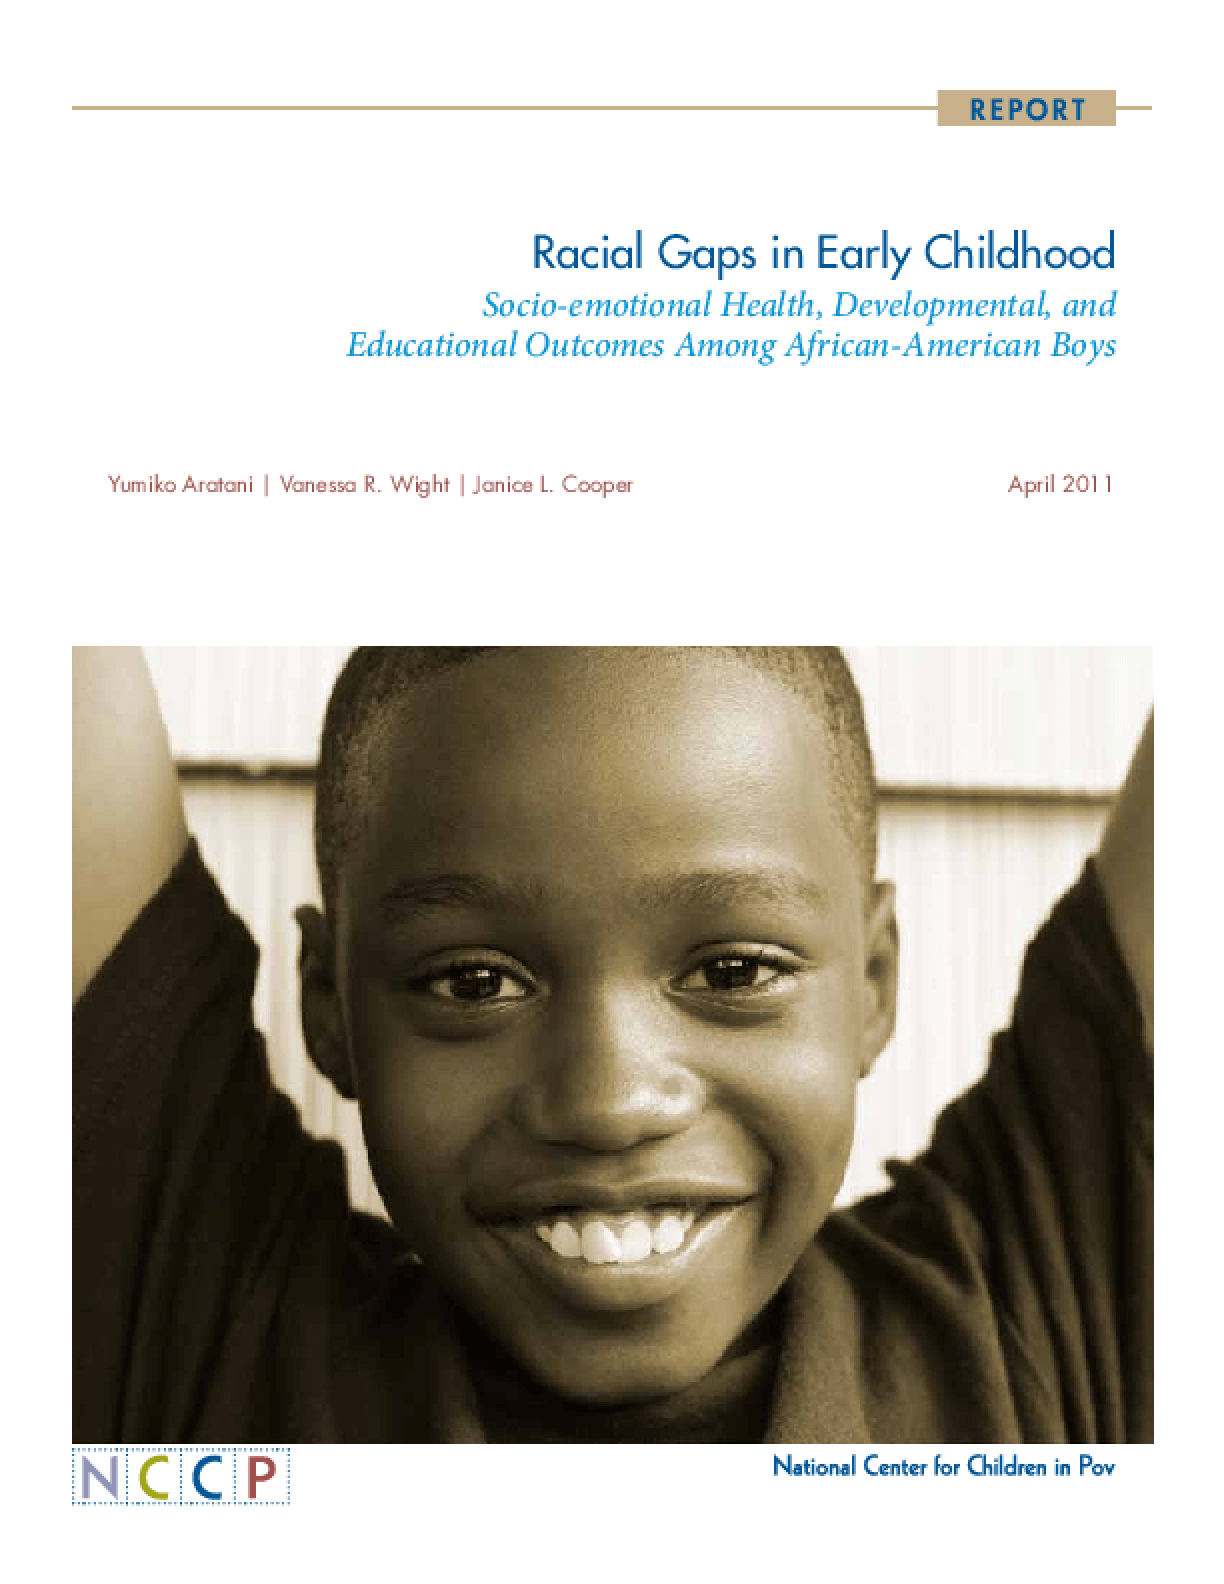 Racial Gaps in Early Childhood: Socio-Emotional Health, Developmental, and Educational Outcomes Among African-American Boys